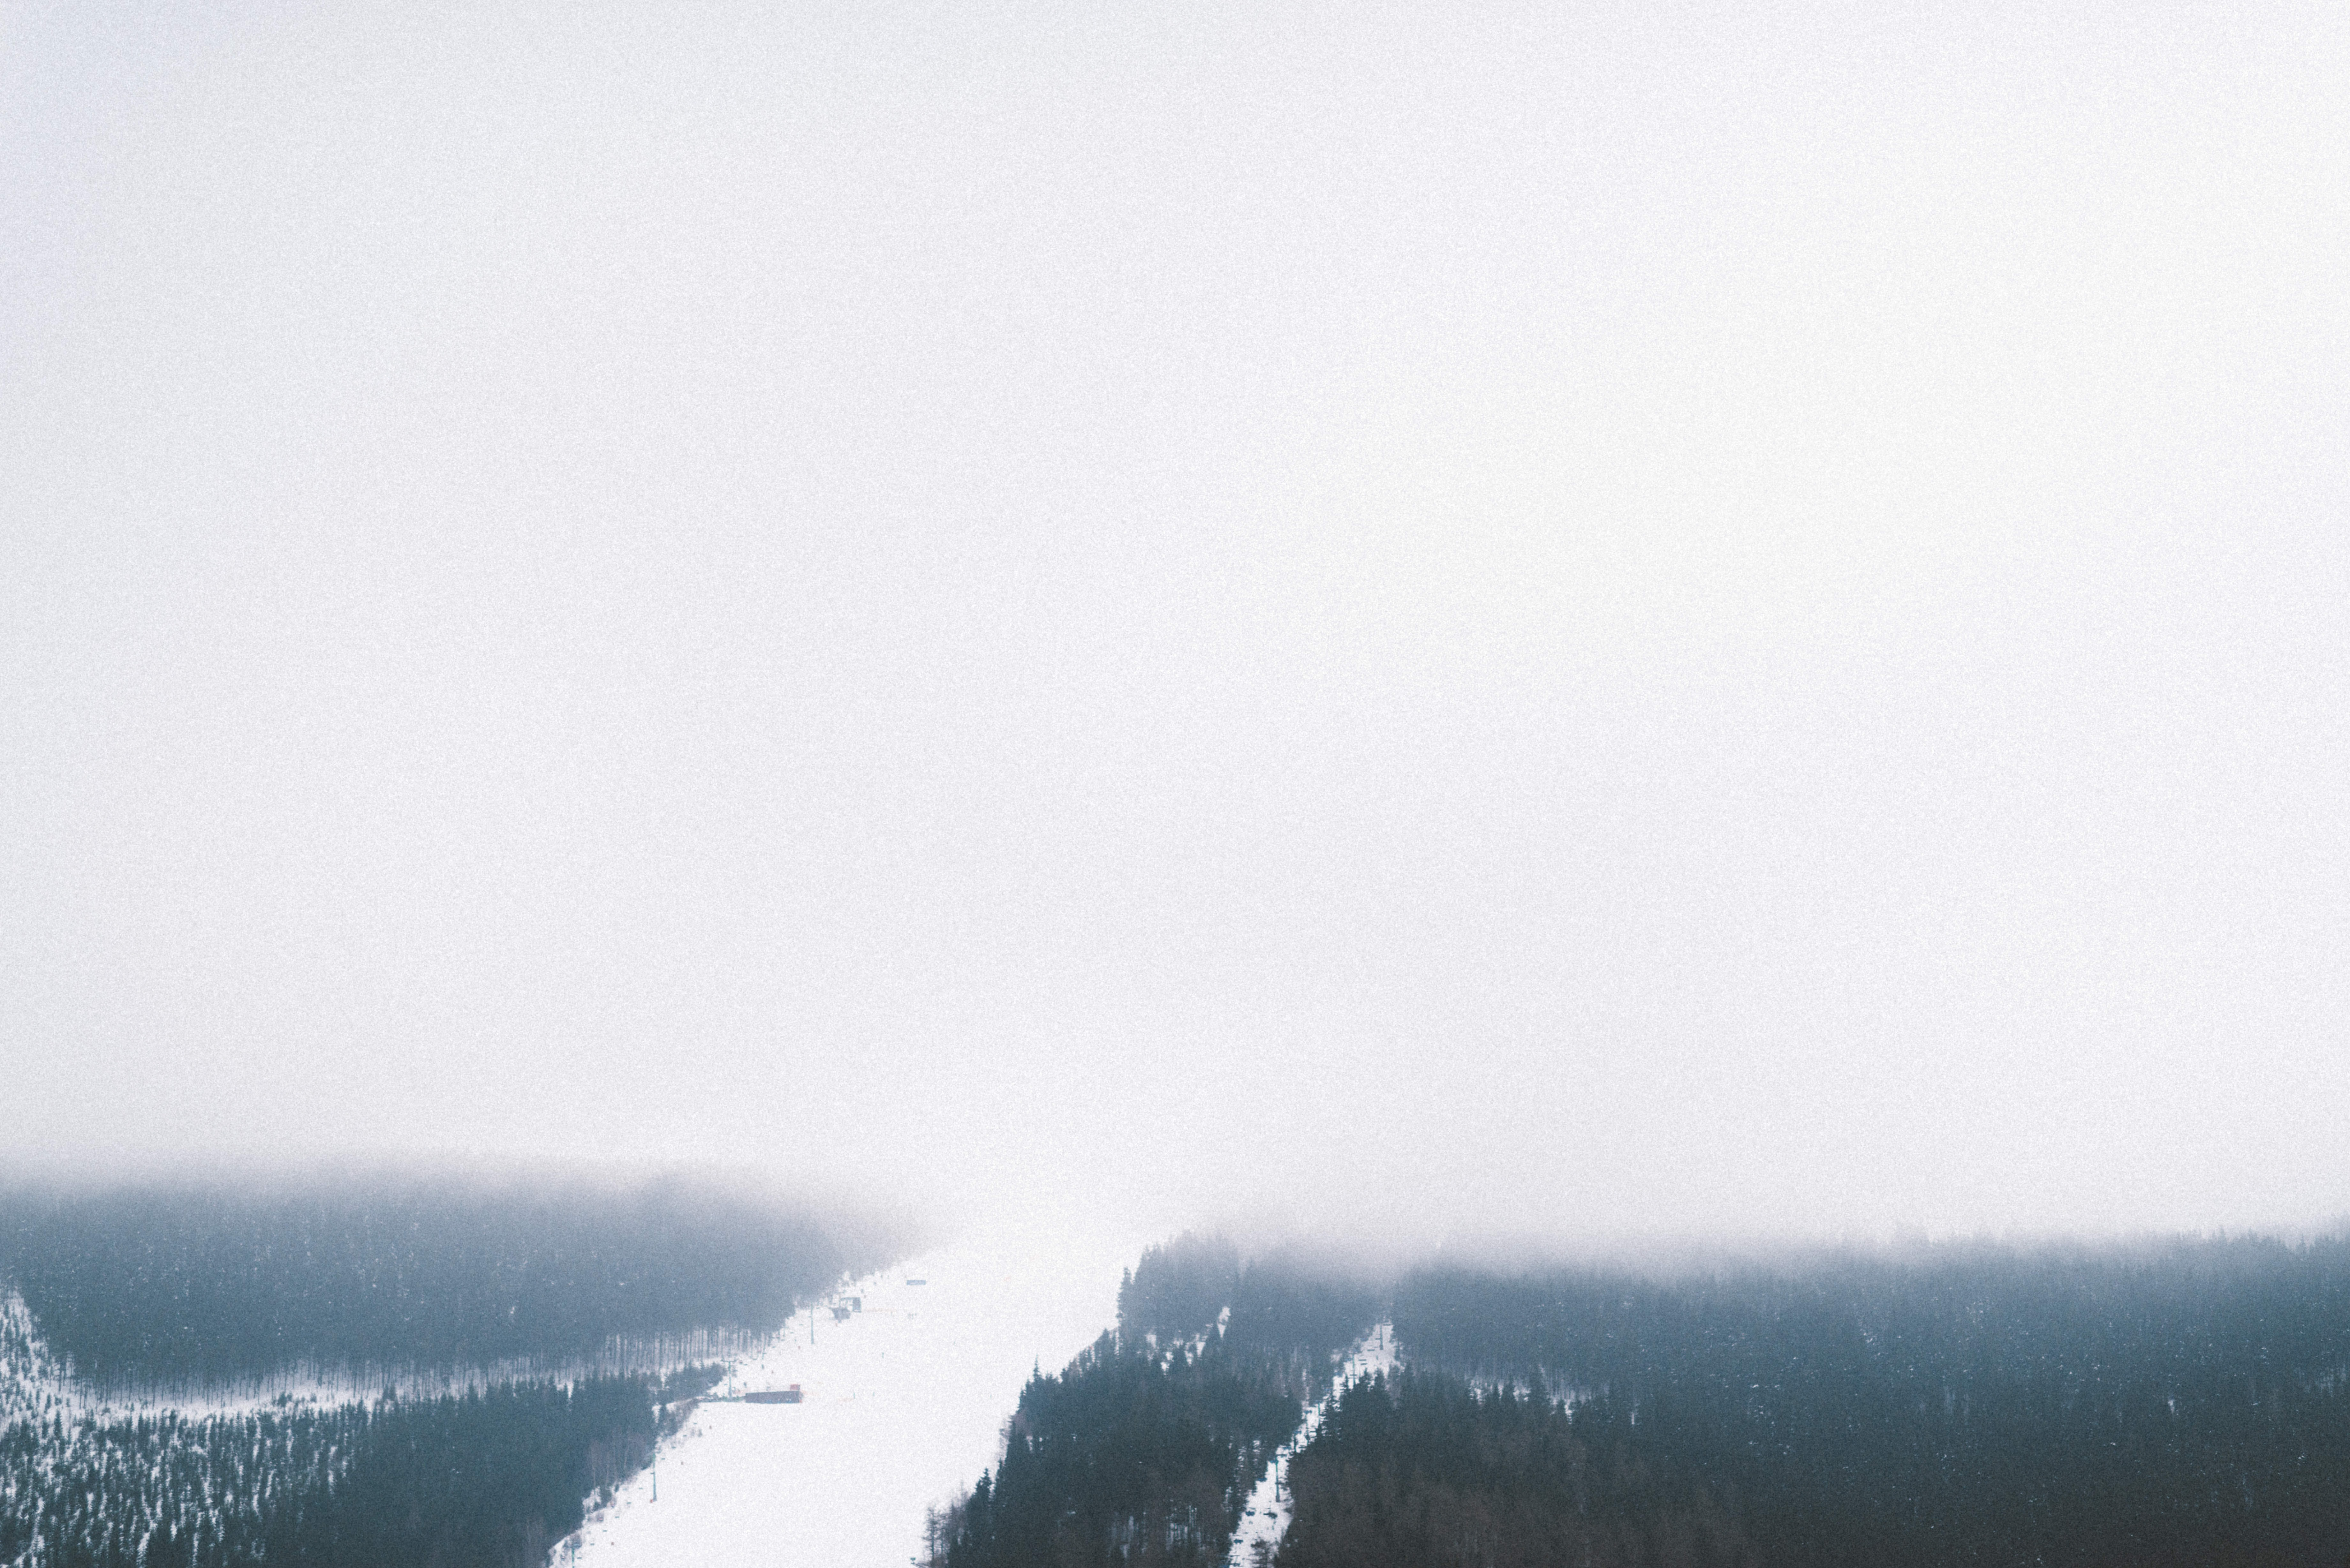 A high view of a snowy wooded slope shrouded in heavy mist in Špindlerův Mlýn